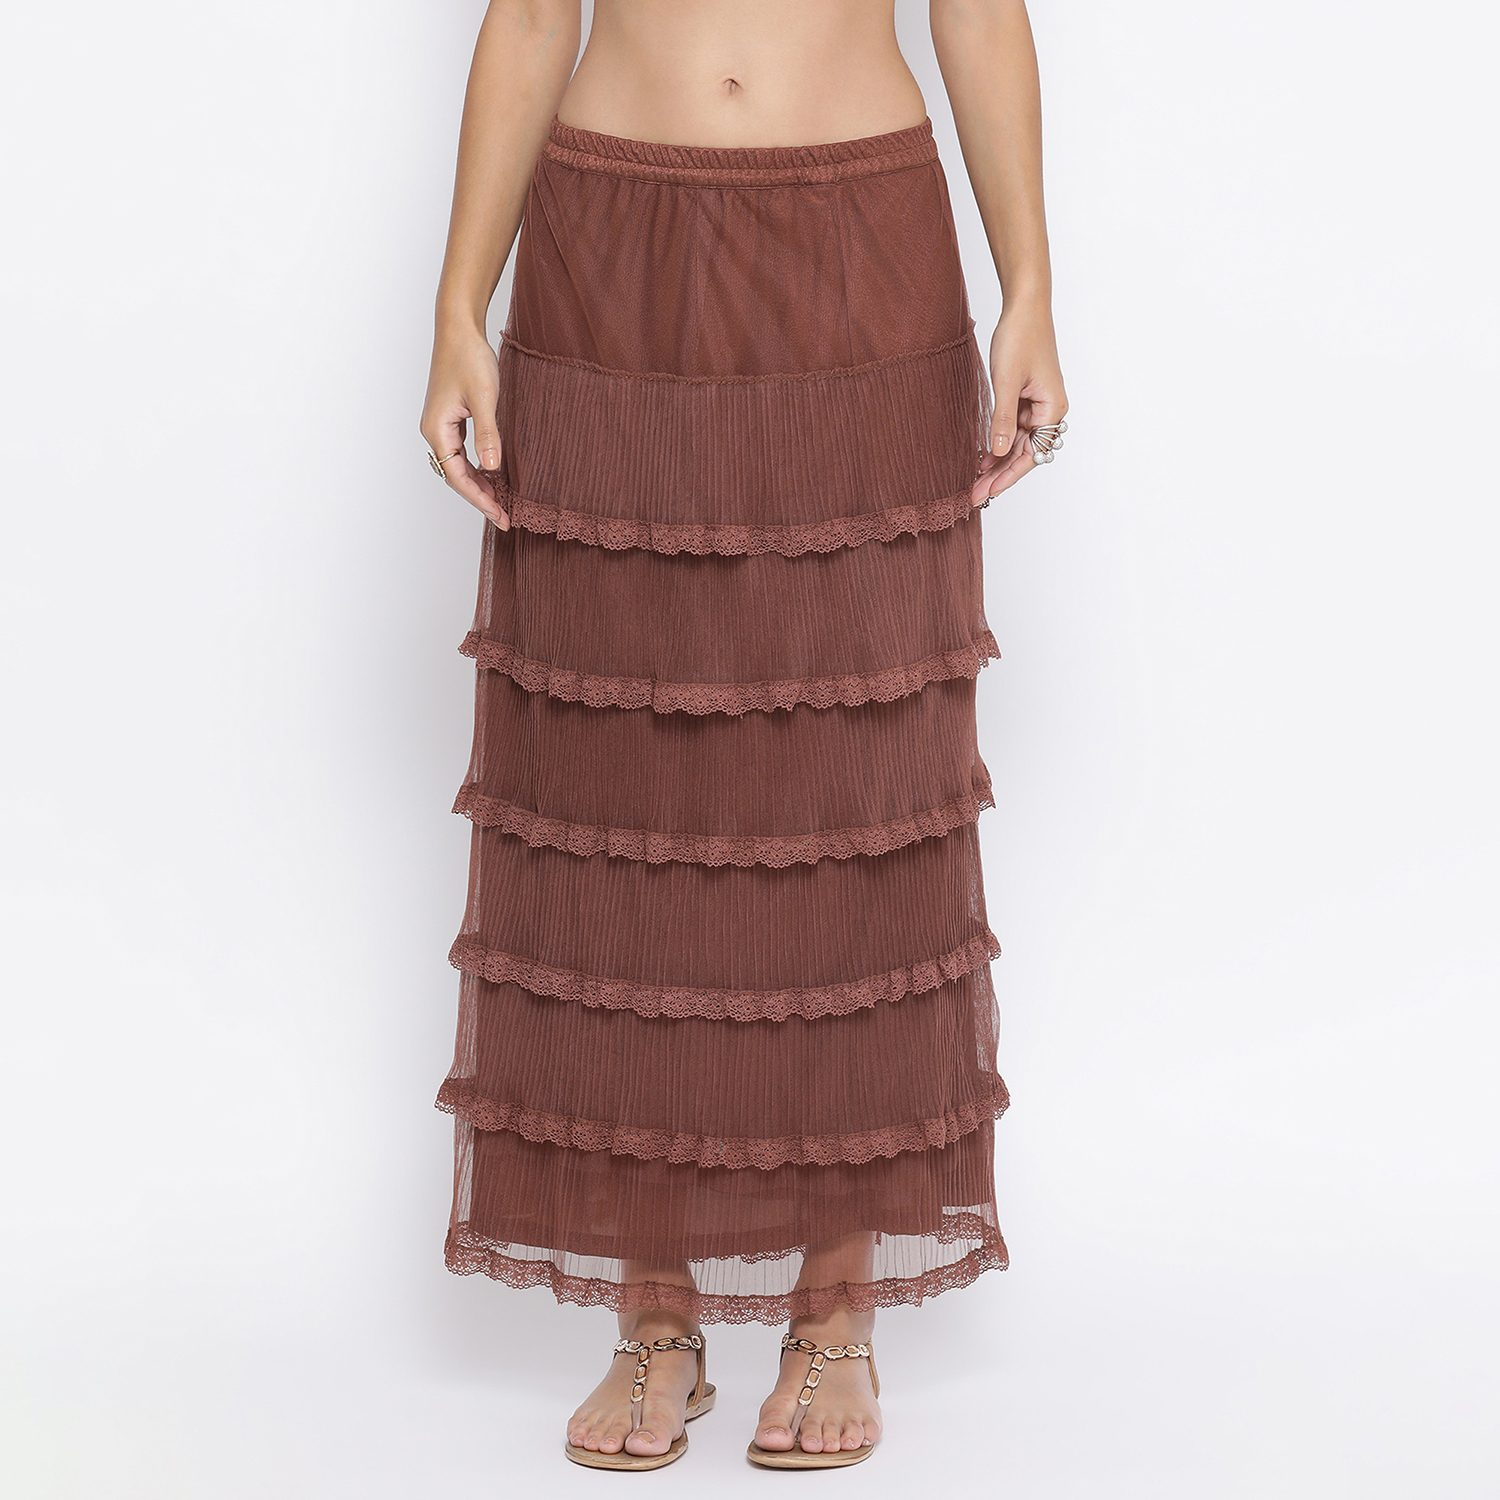 Buy Rust Flower Net Frill Skirt With Lace For Women